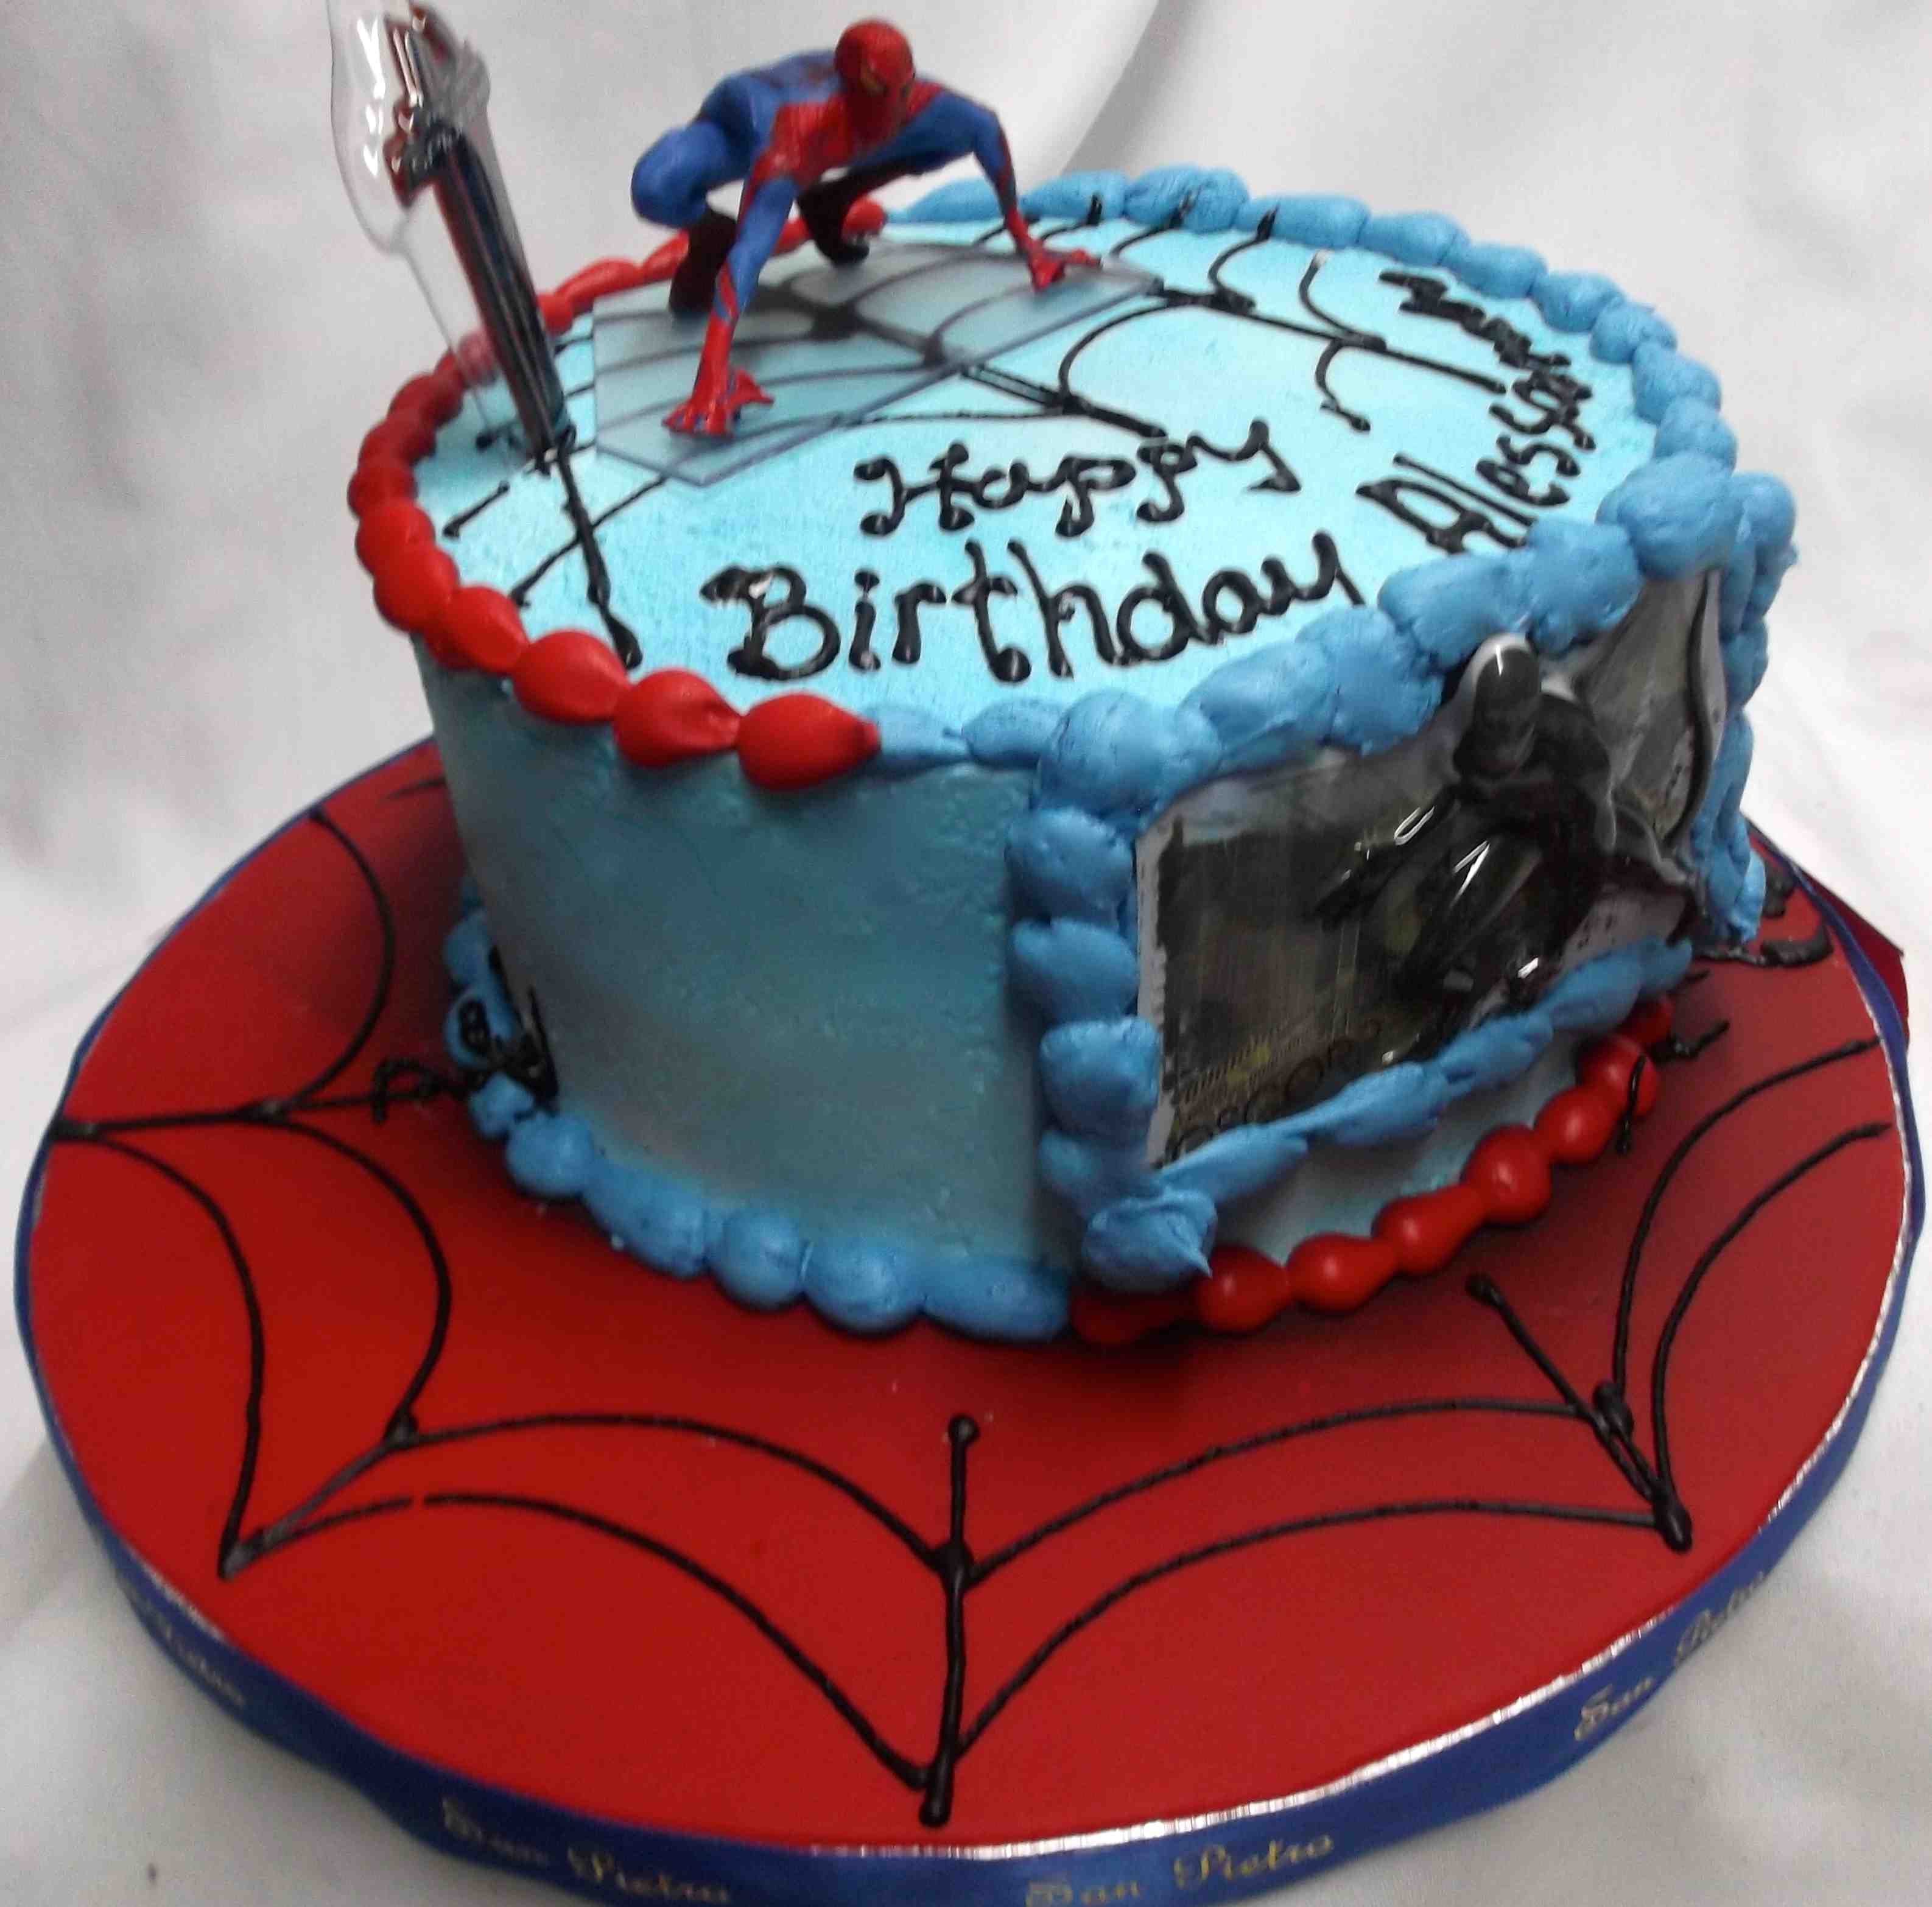 Black spiderman cakes - photo#24